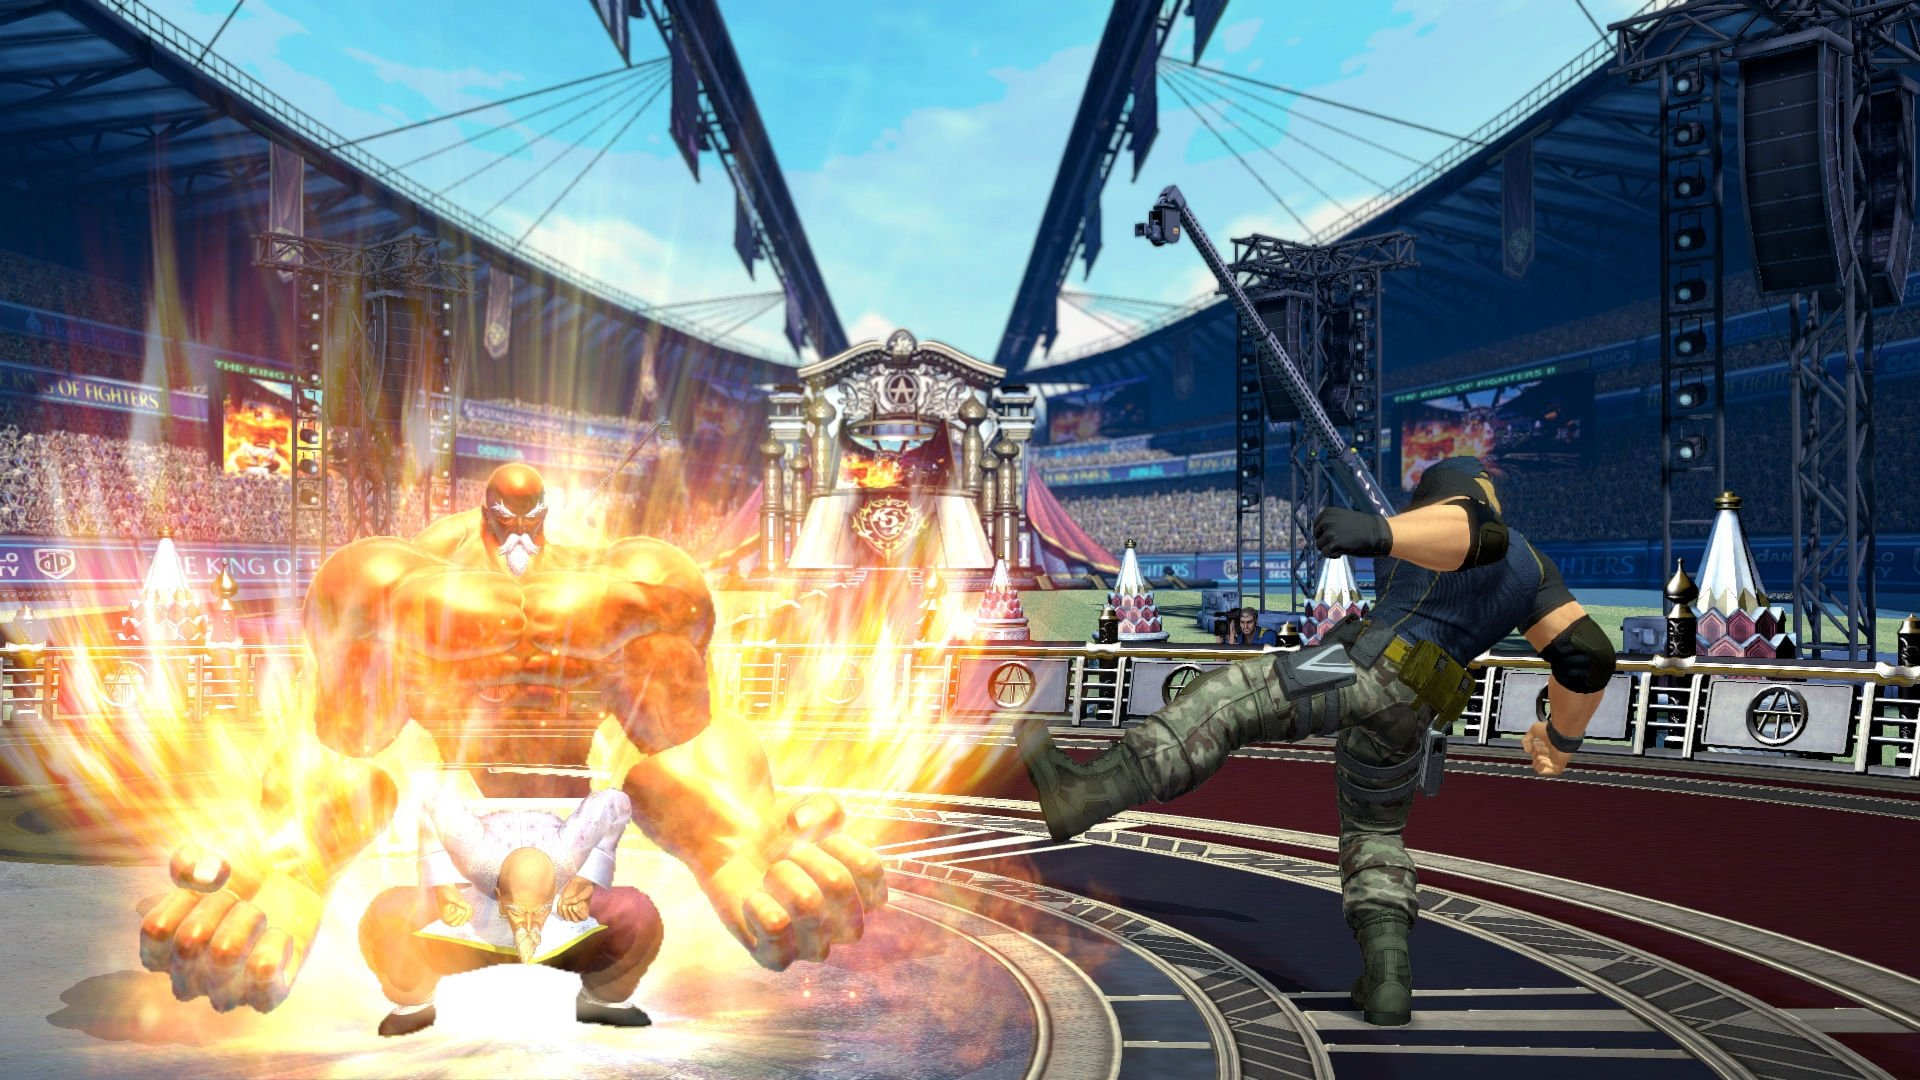 king_of_fighters_xiv-3371175.jpg